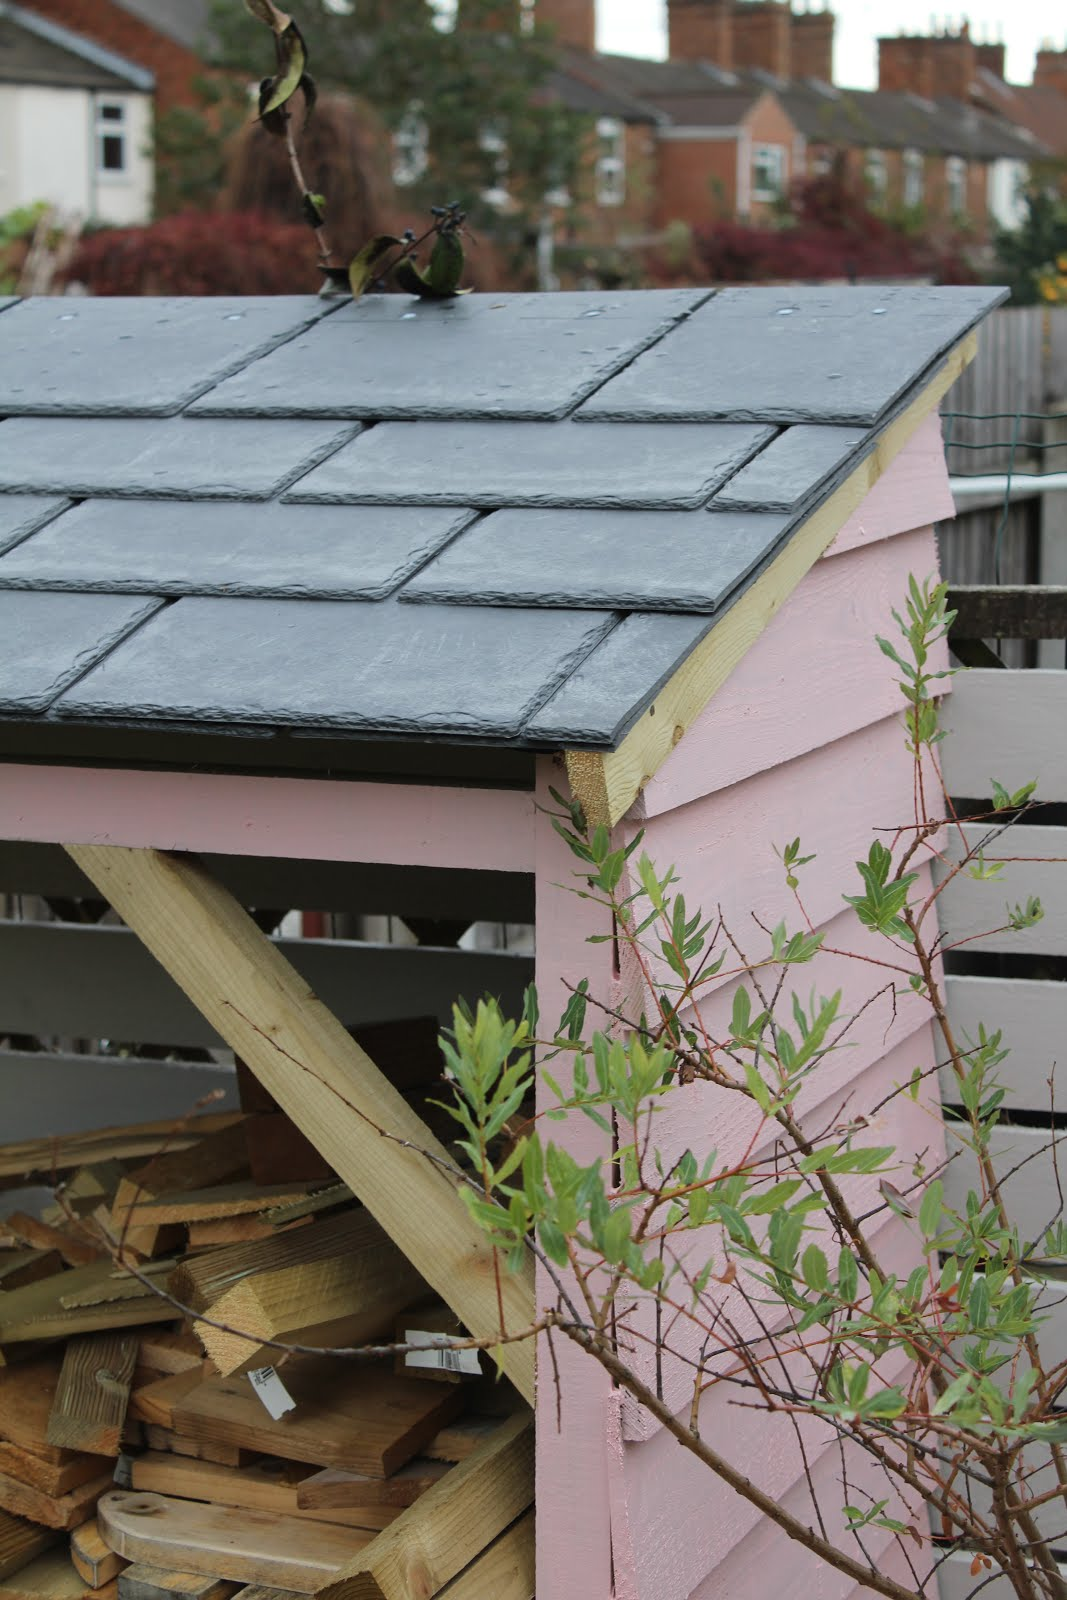 tapco synthetic slate tiles on garden shed